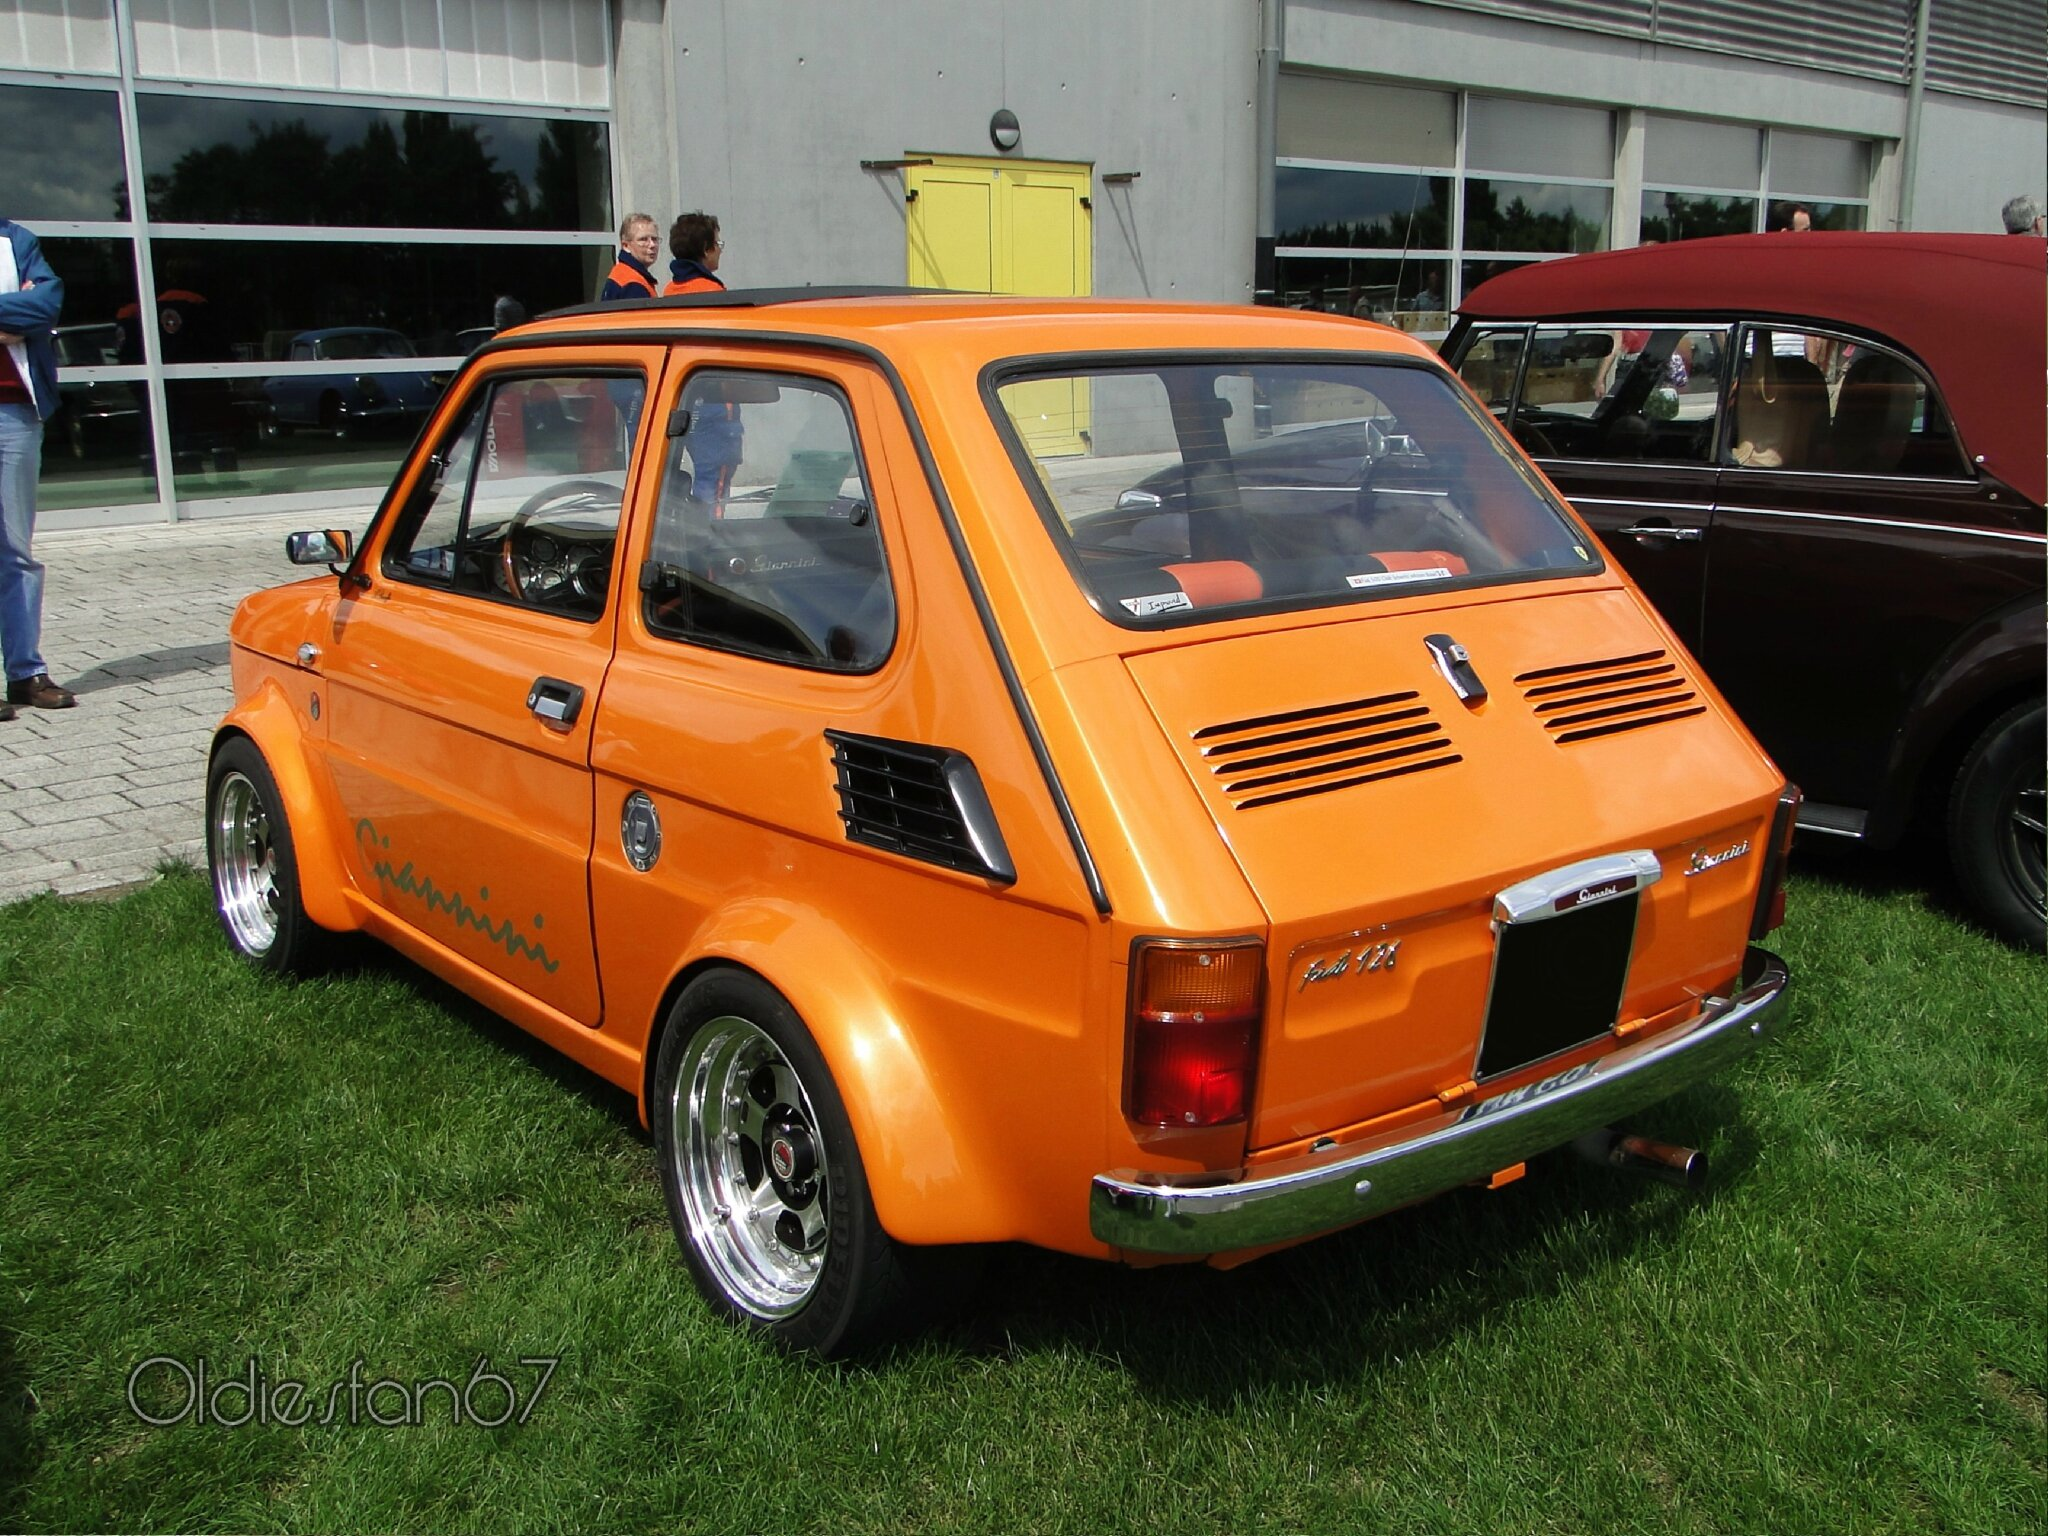 fiat 126 giannini oldiesfan67 mon blog auto. Black Bedroom Furniture Sets. Home Design Ideas